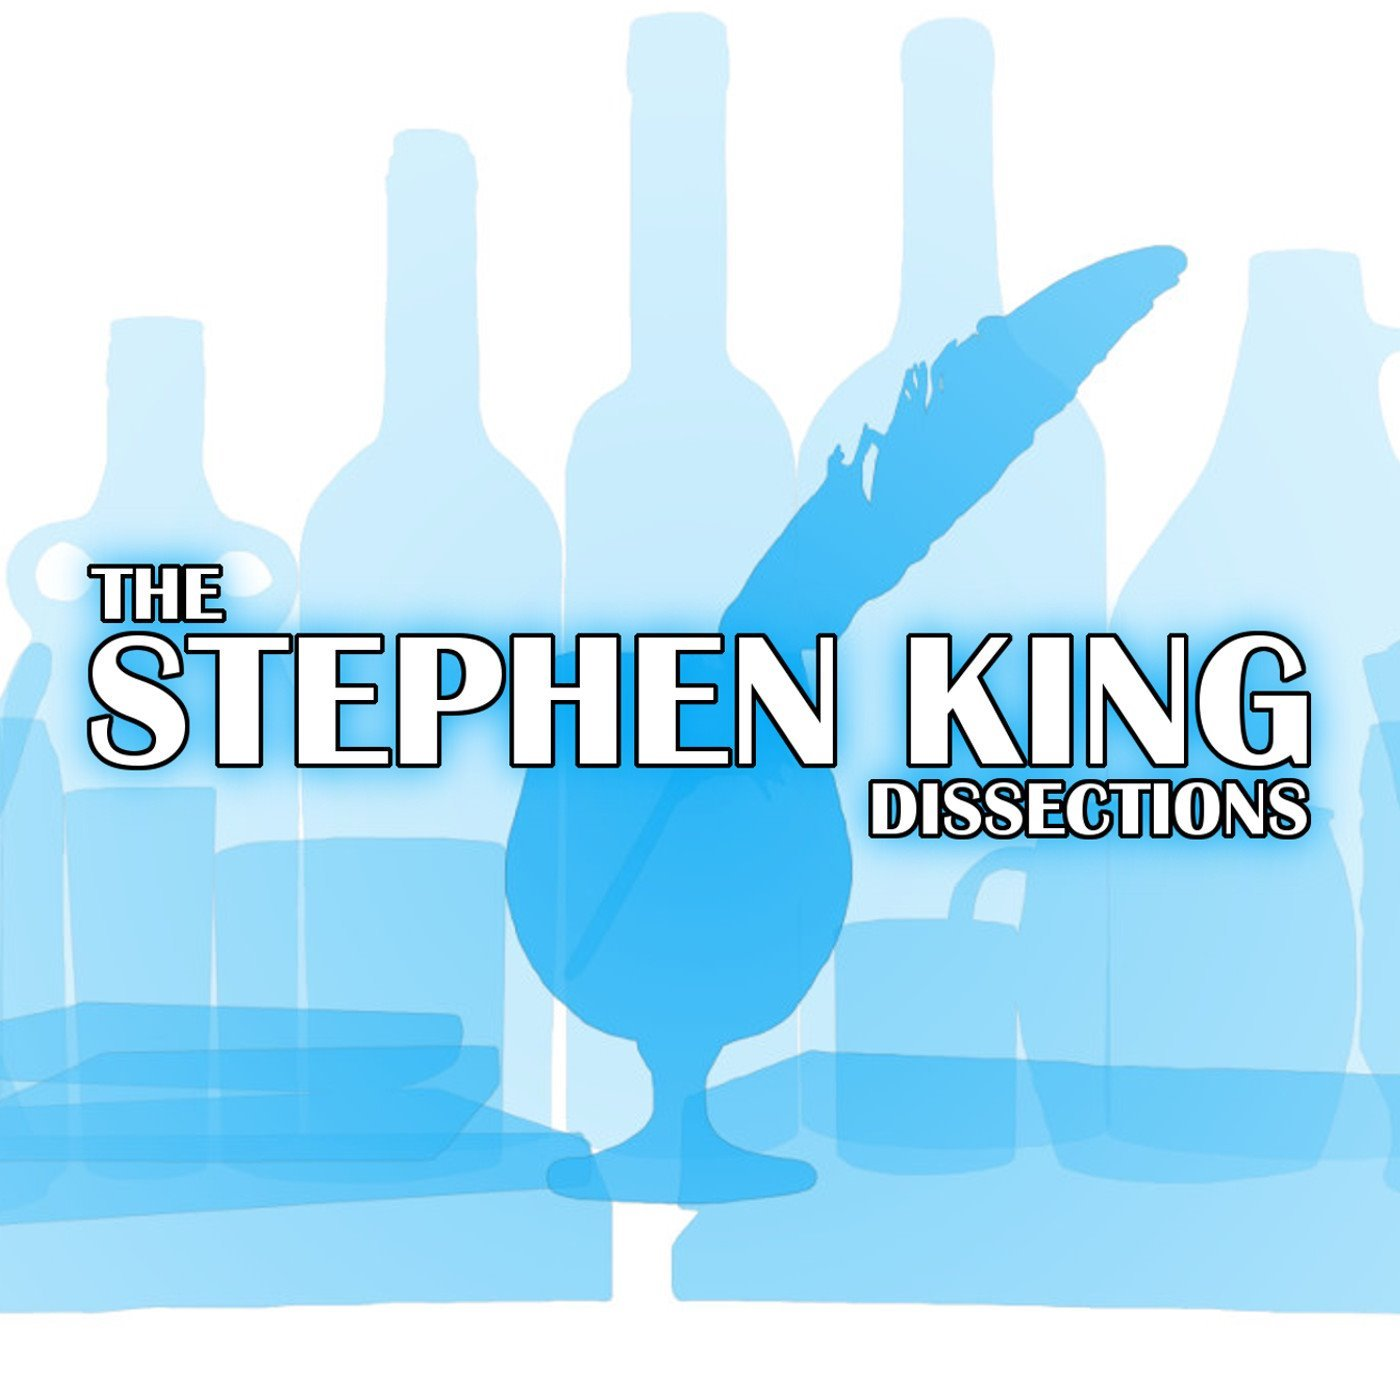 DANSE MACABRE: The World's Most Interesting Textbook  (Stephen King Dissections ep. 13)